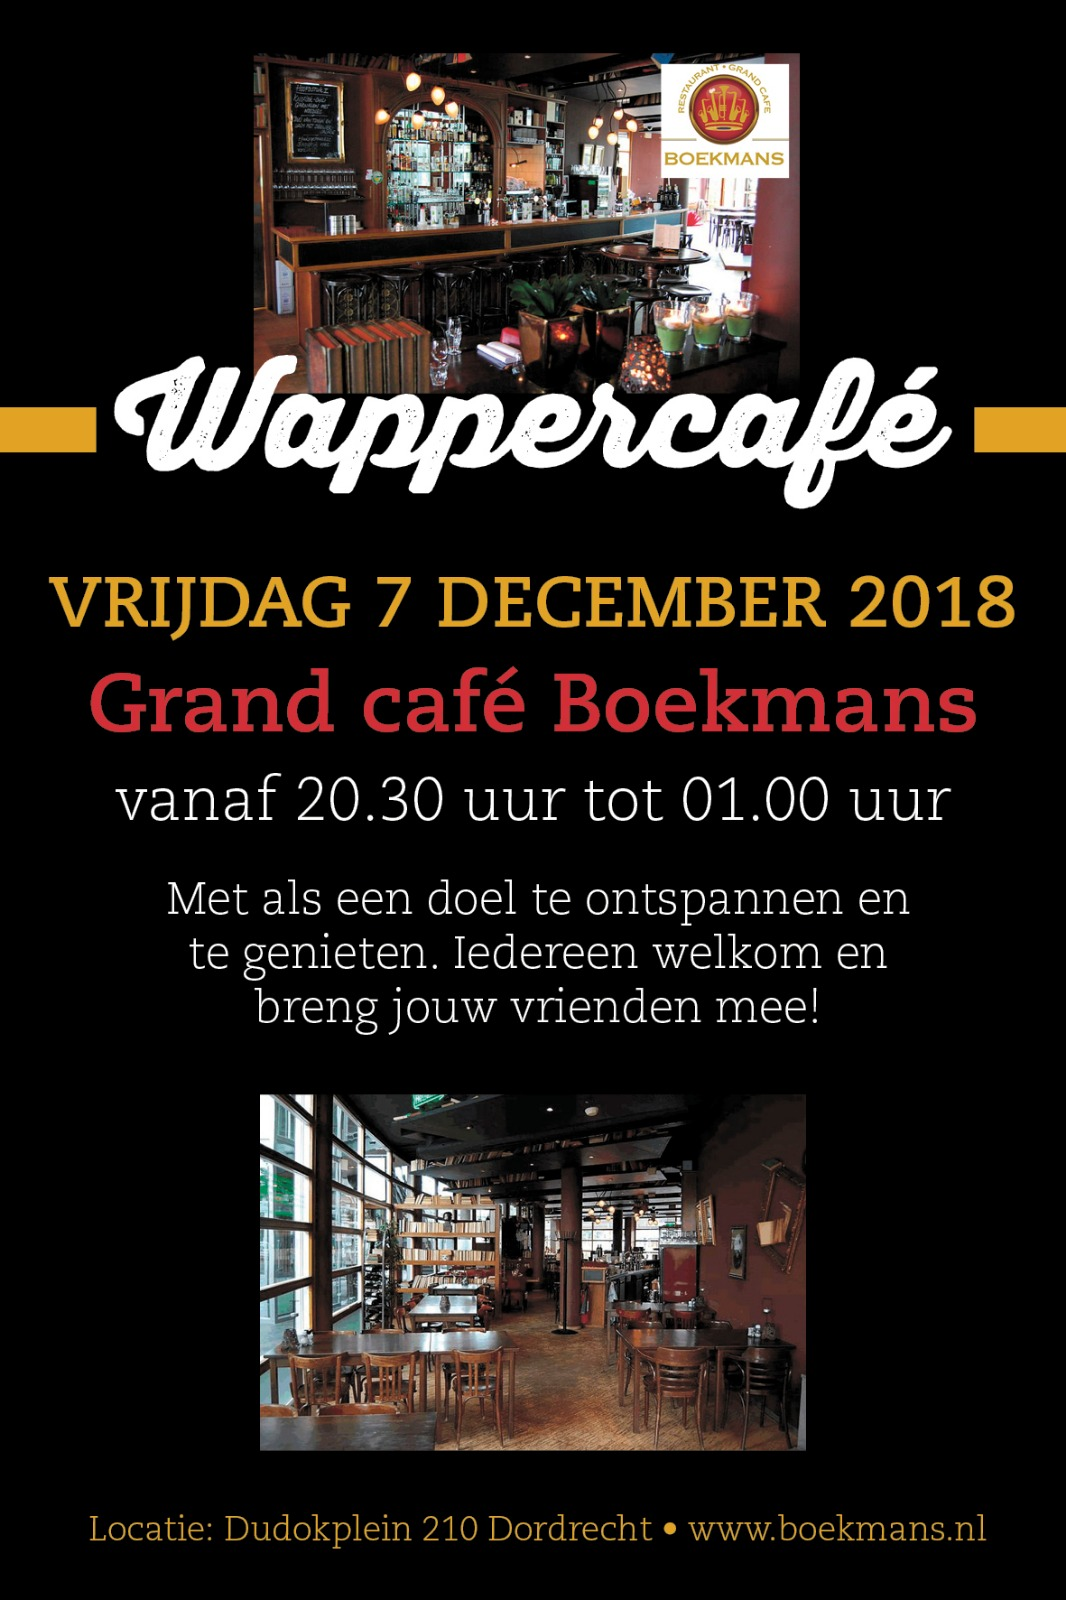 Wappercafe 7 december 2018